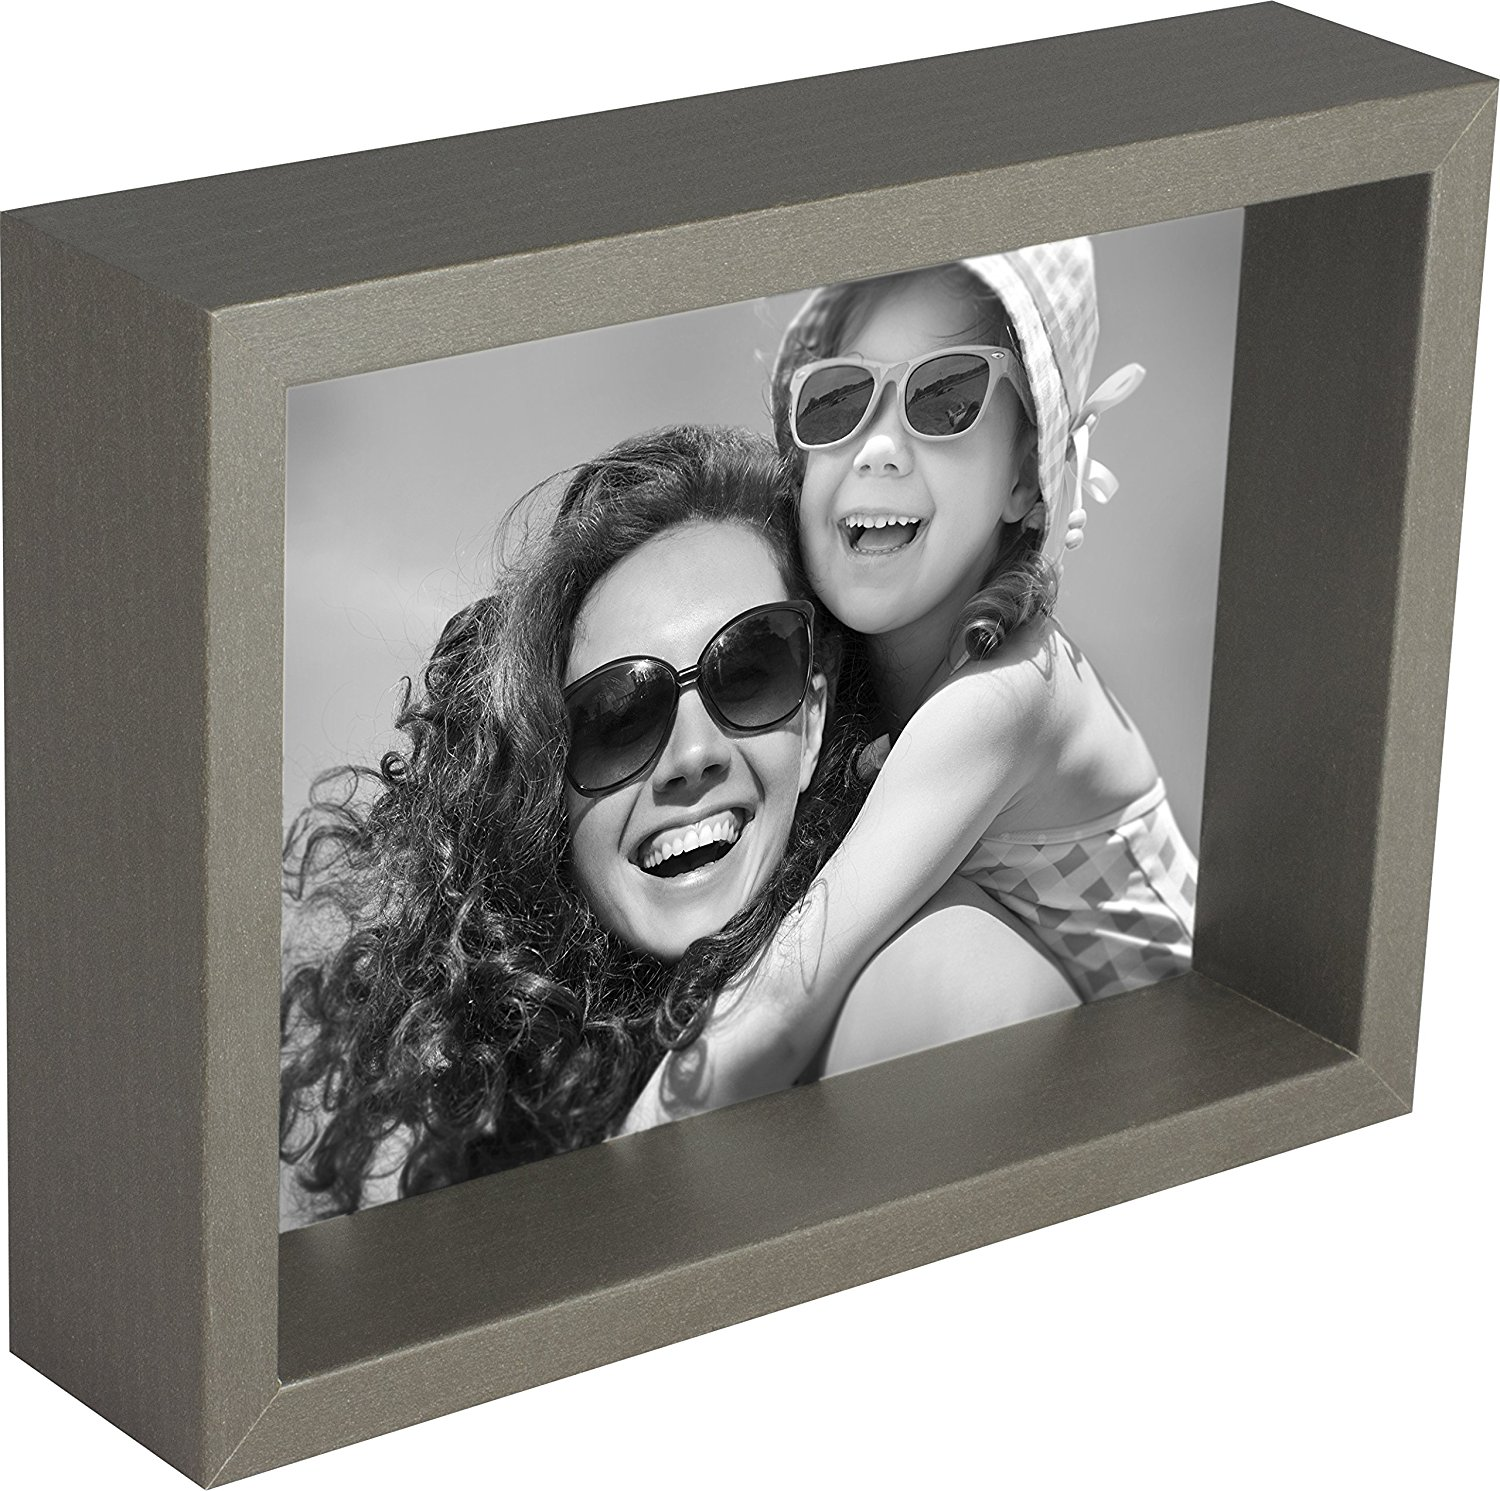 8 x 10-Inch Box Picture Photo Frame, Grey